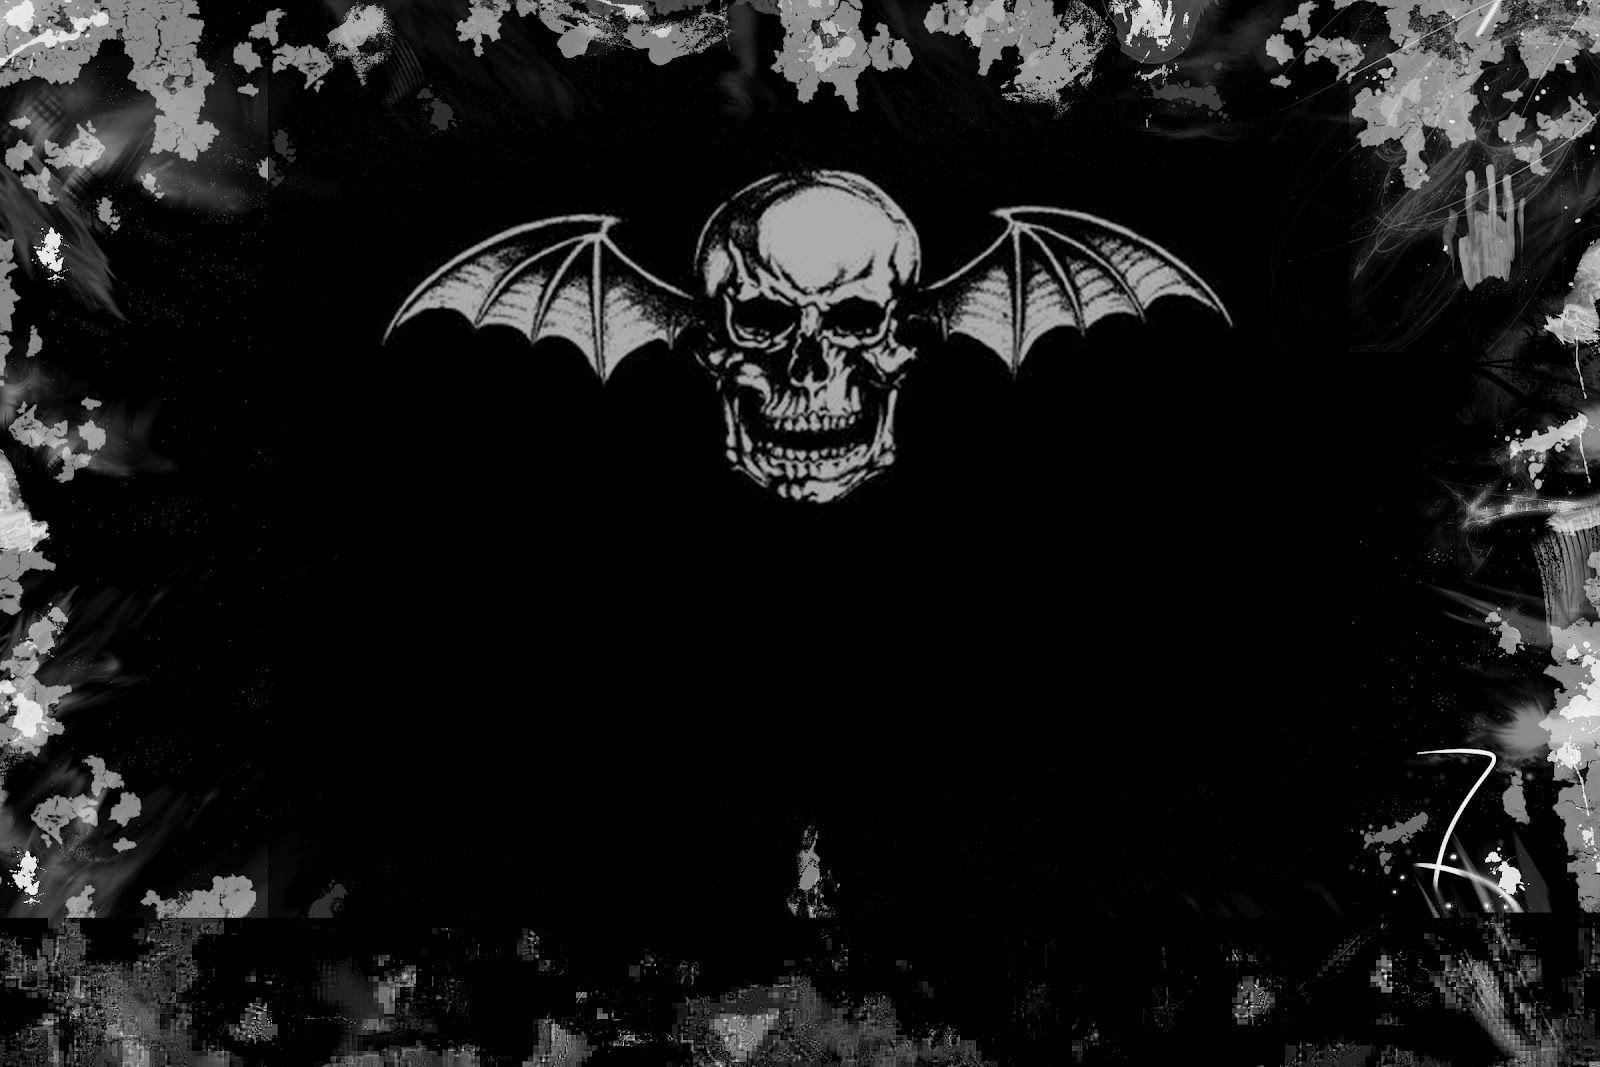 Avenged Sevenfold 2017 Wallpapers 1600x1067